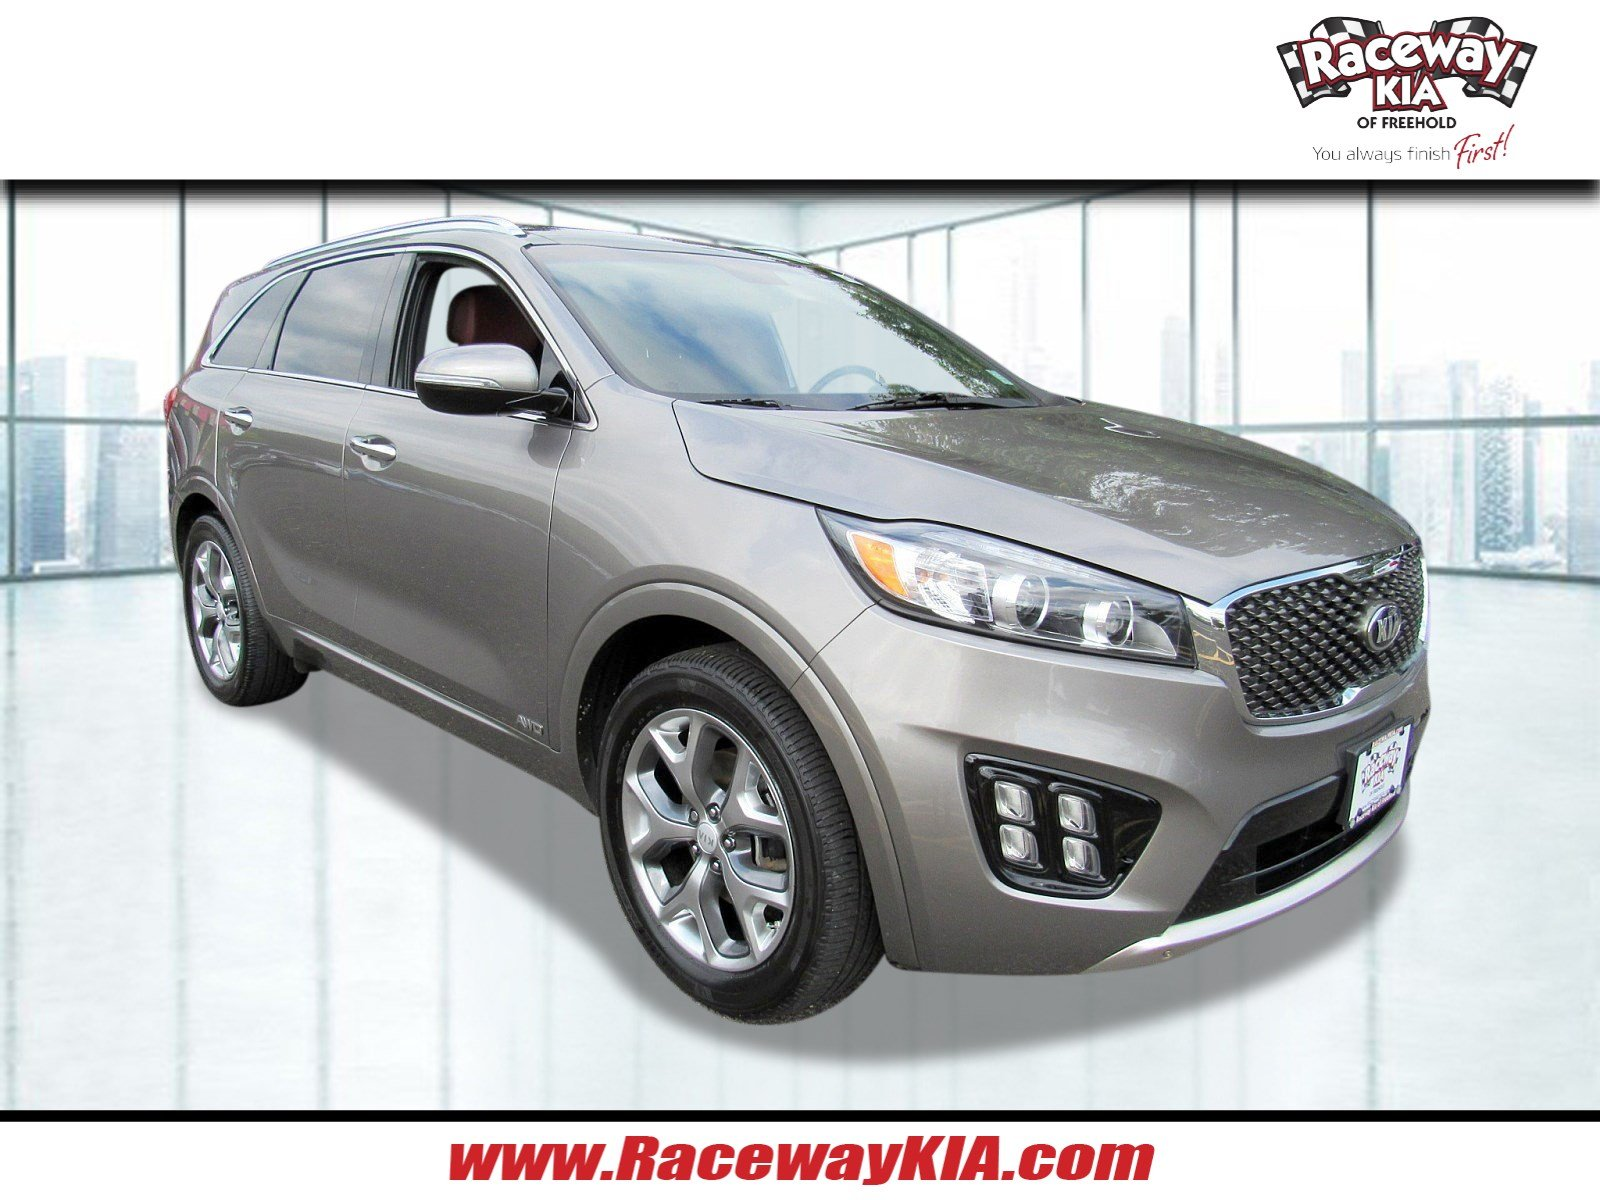 Certified Pre Owned 2016 Kia Sorento SXL Sport Utility in Freehold